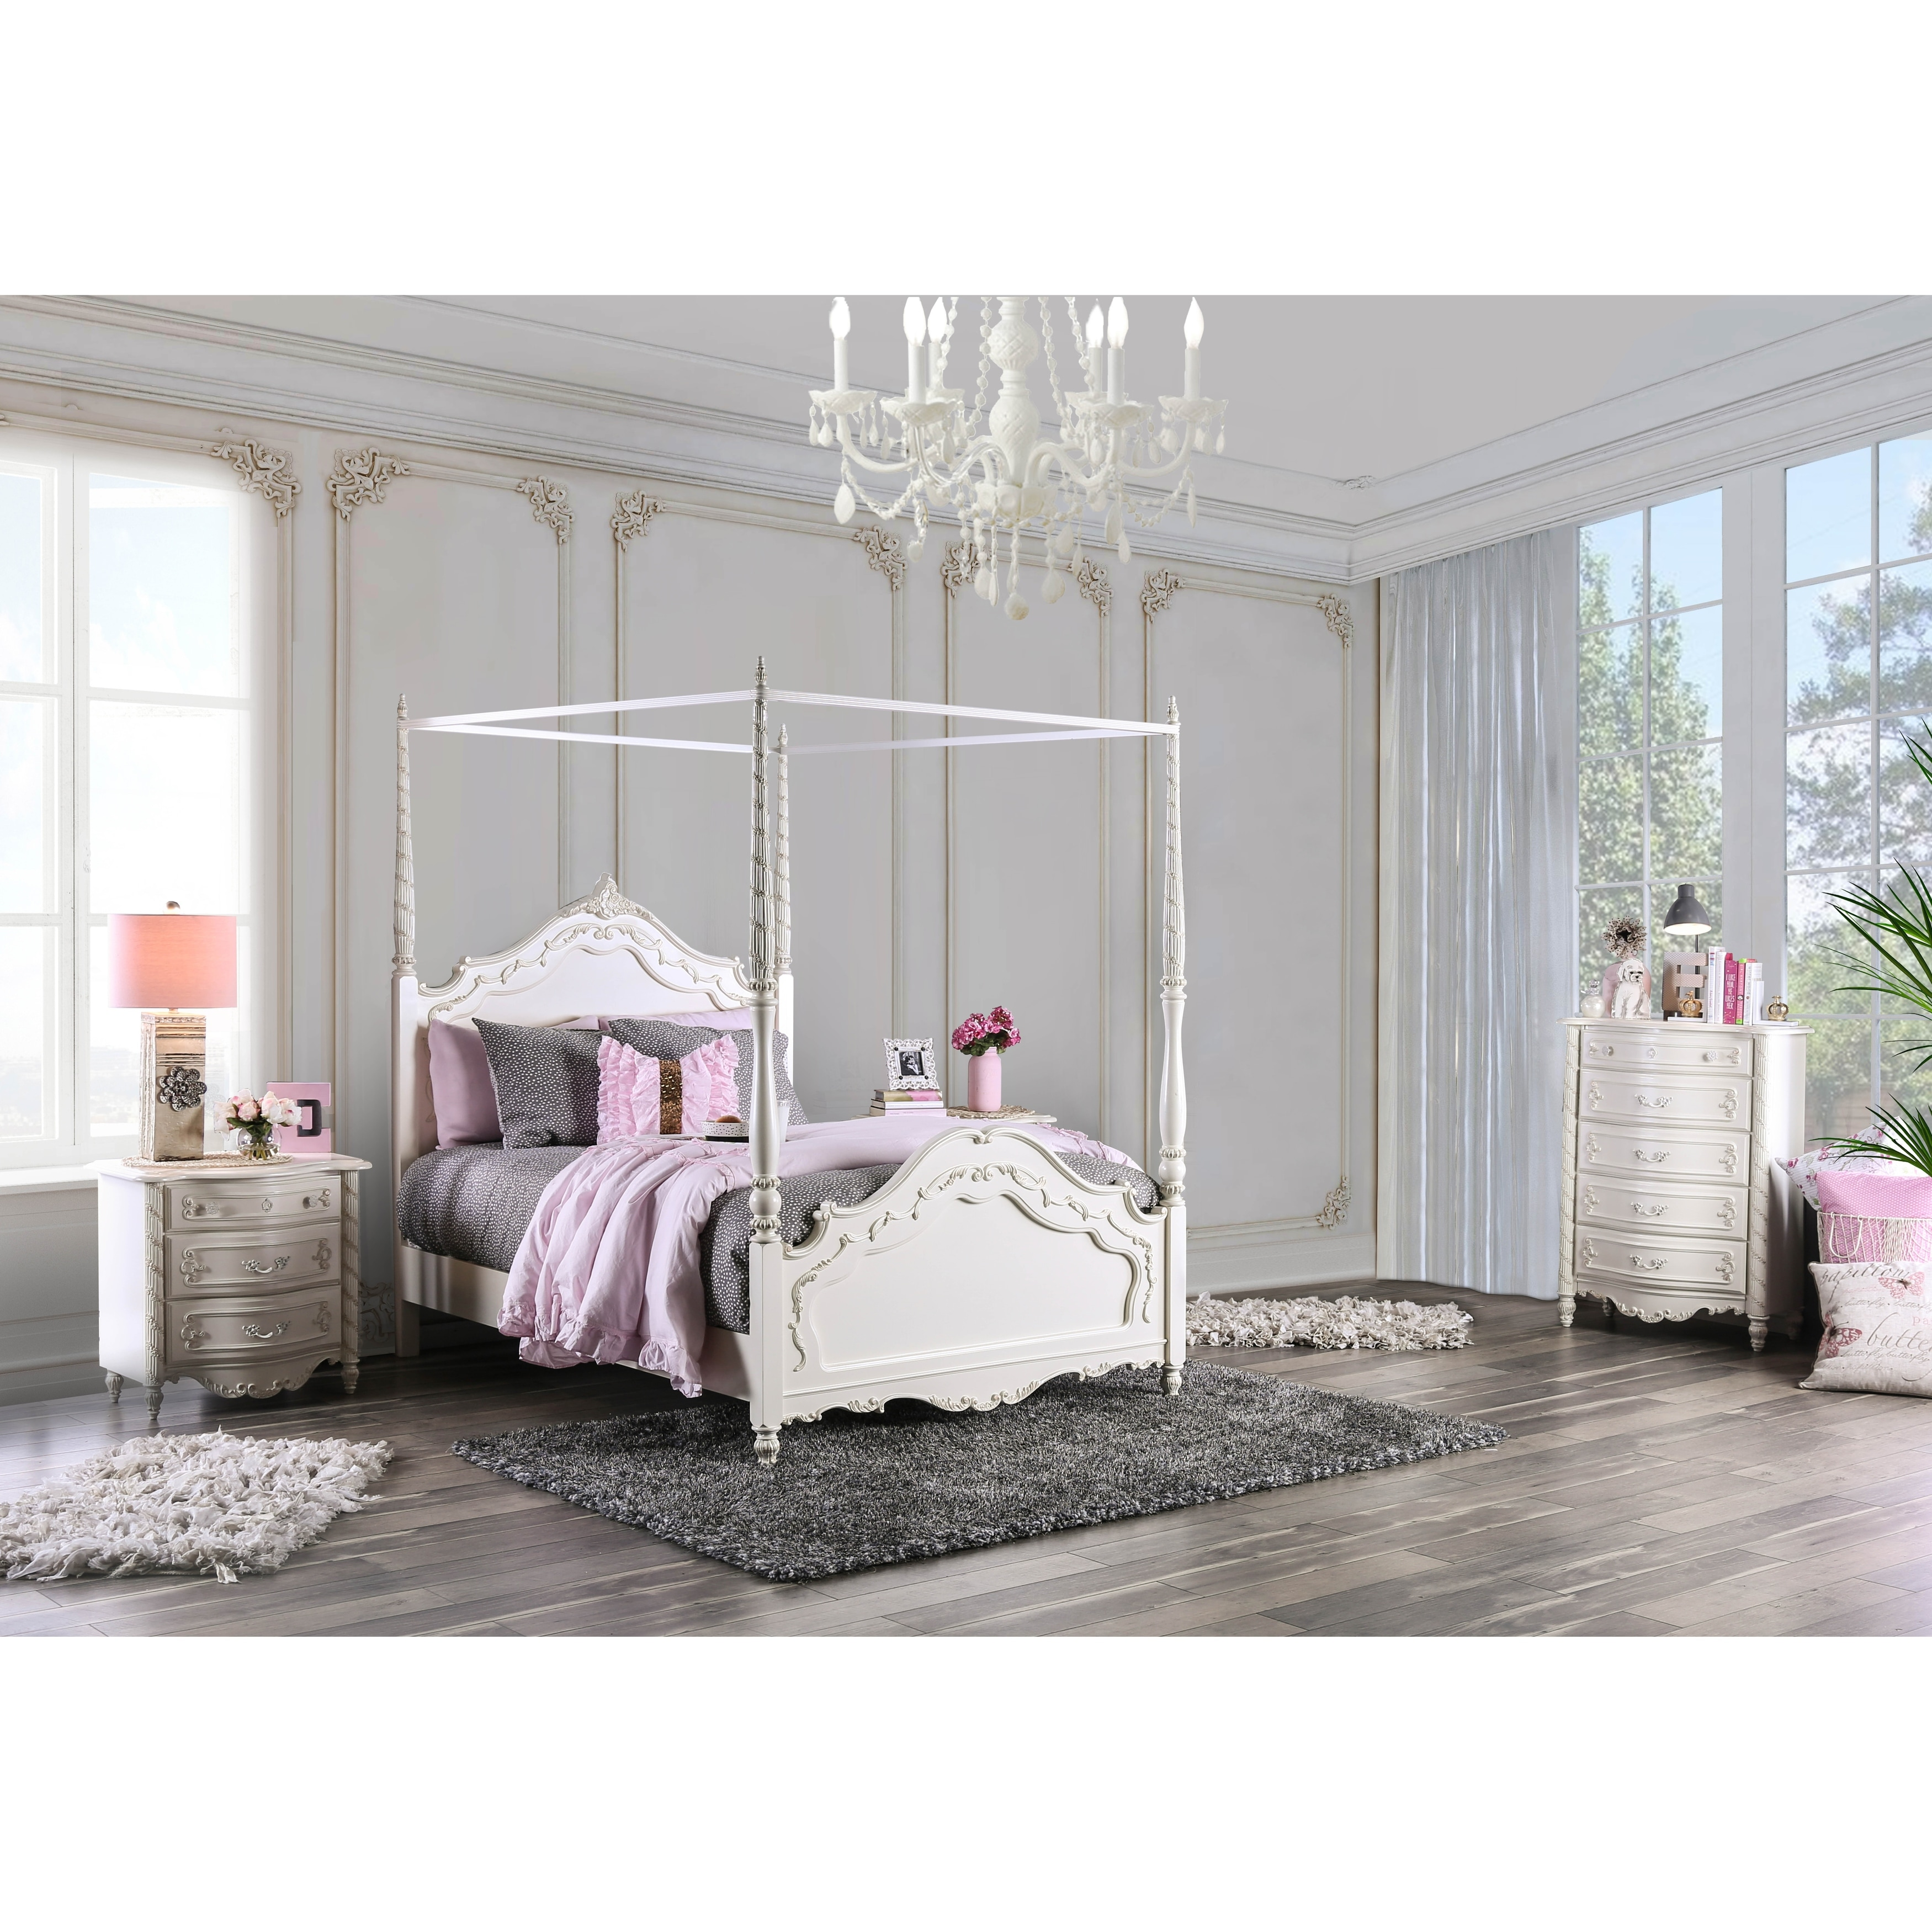 Furniture Of America Imer Traditional White 3 Piece Canopy Bed Set Overstock 9378662